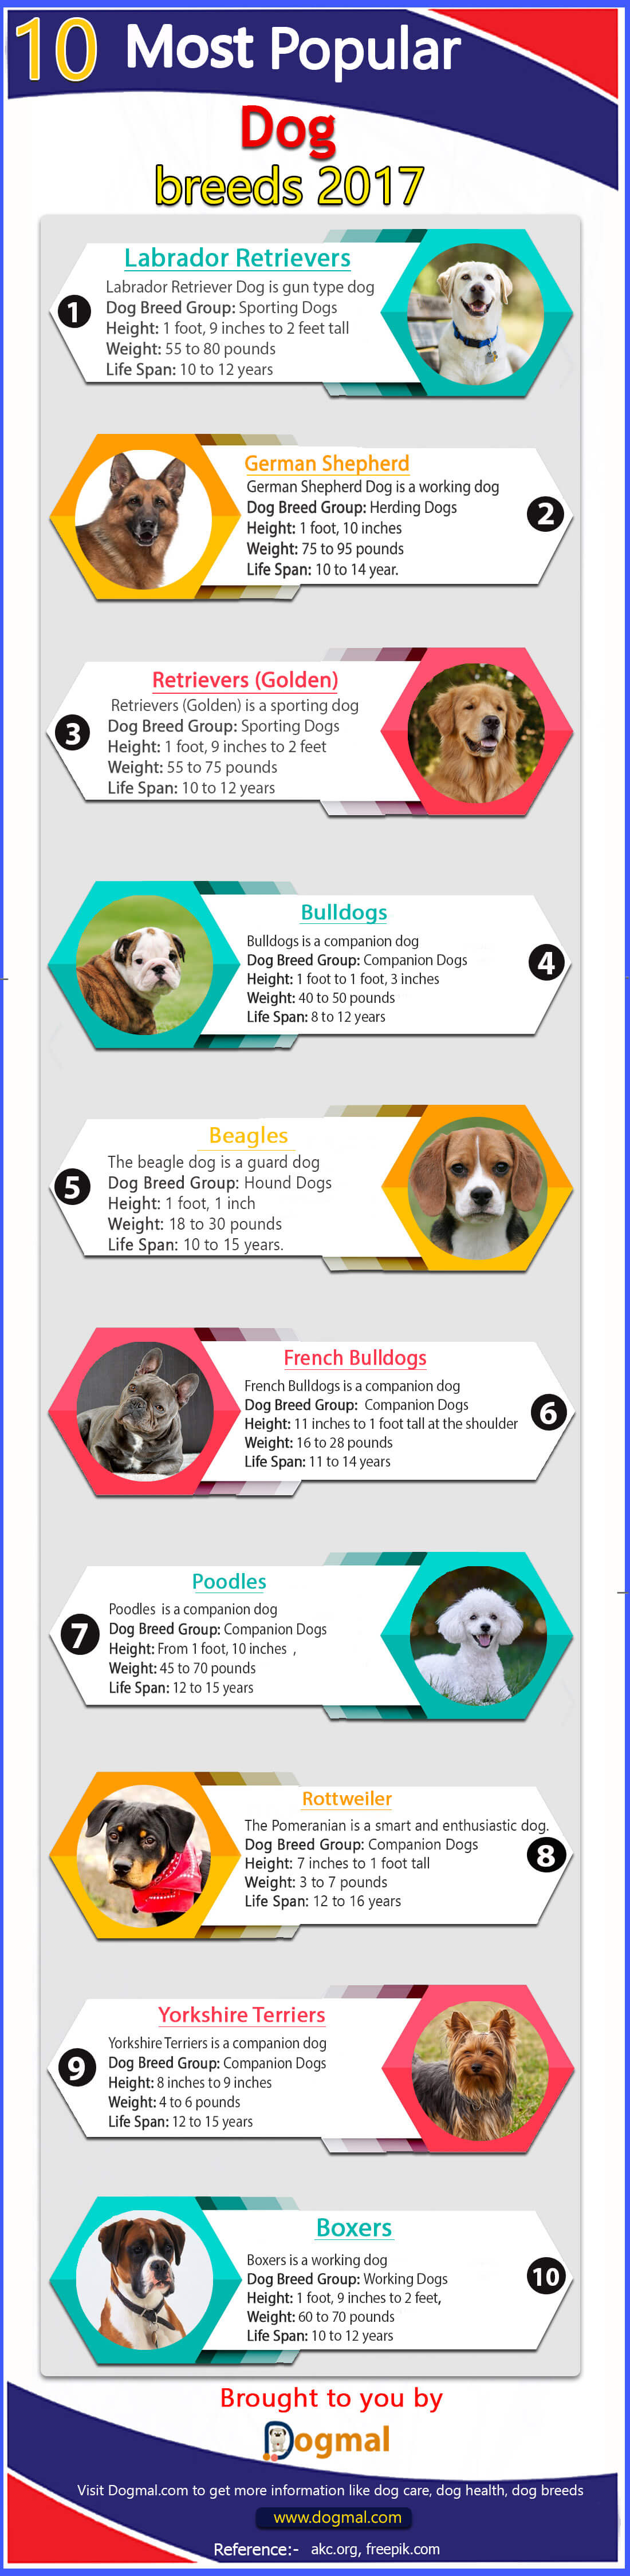 Top 10 Most popular dog breeds 2017 by AKC Infographic